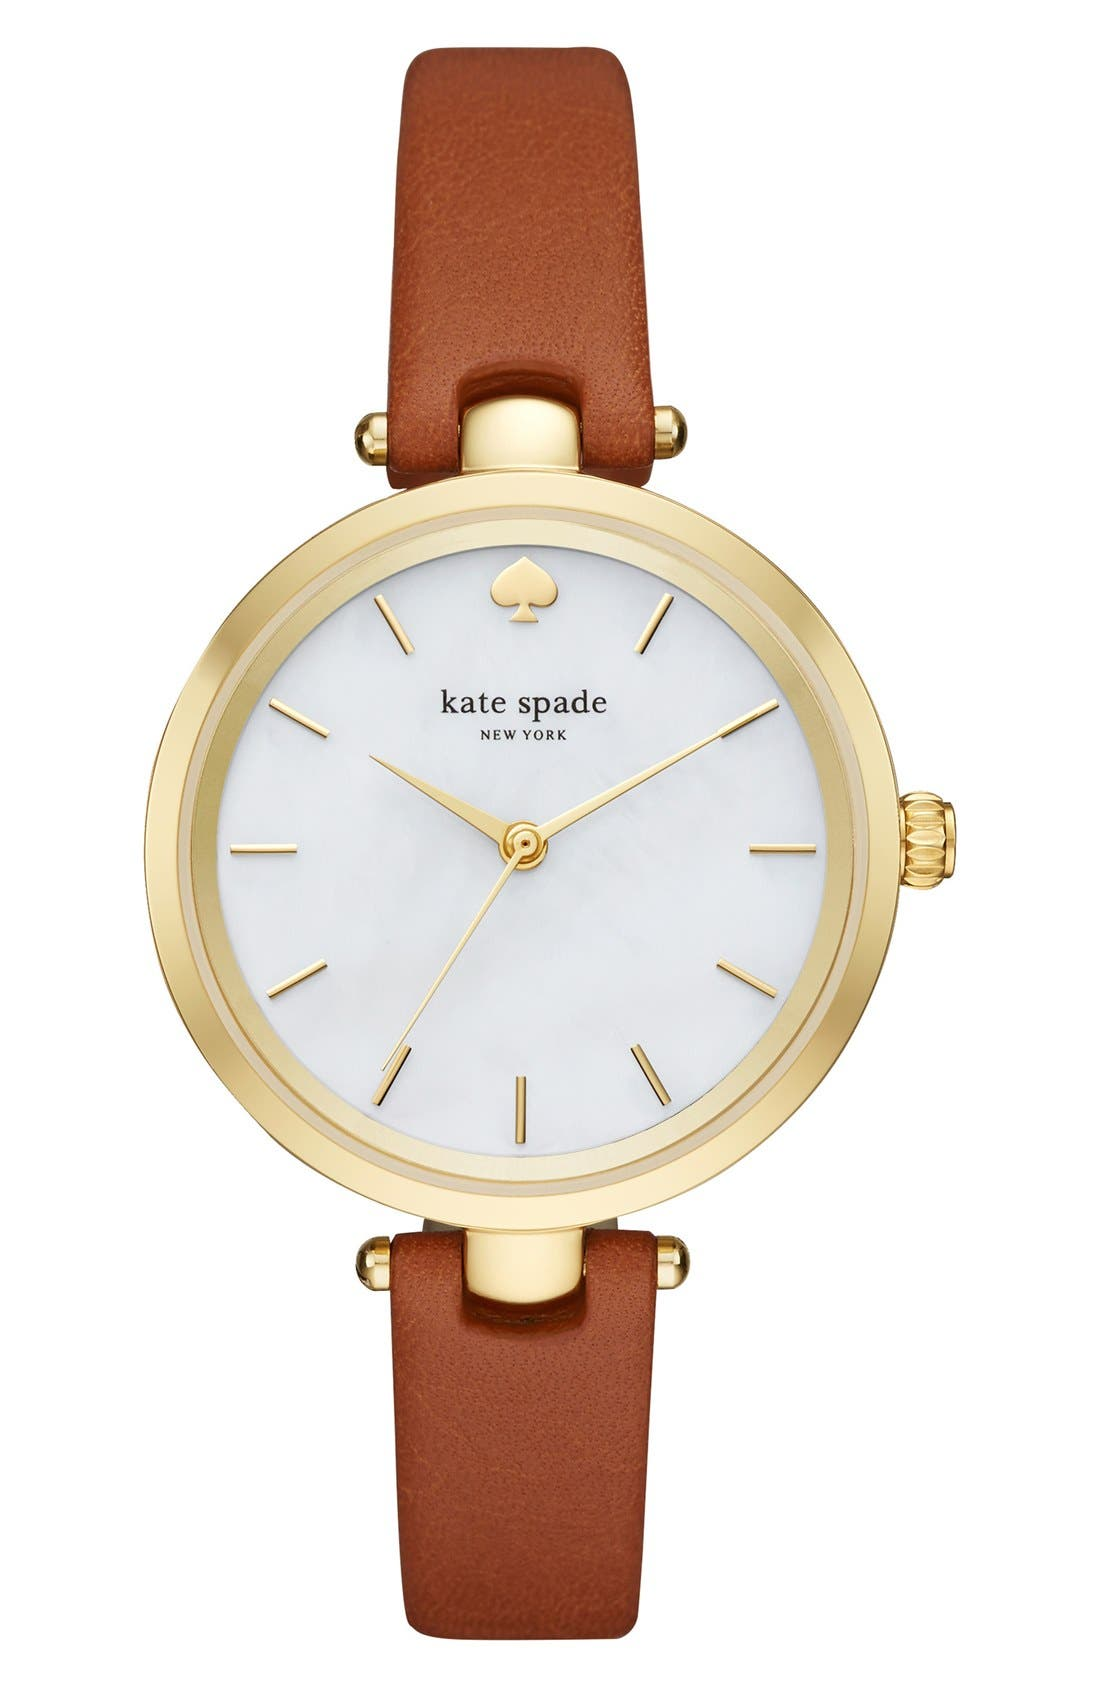 Main Image - kate spade new york 'holland' round leather strap watch, 34mm